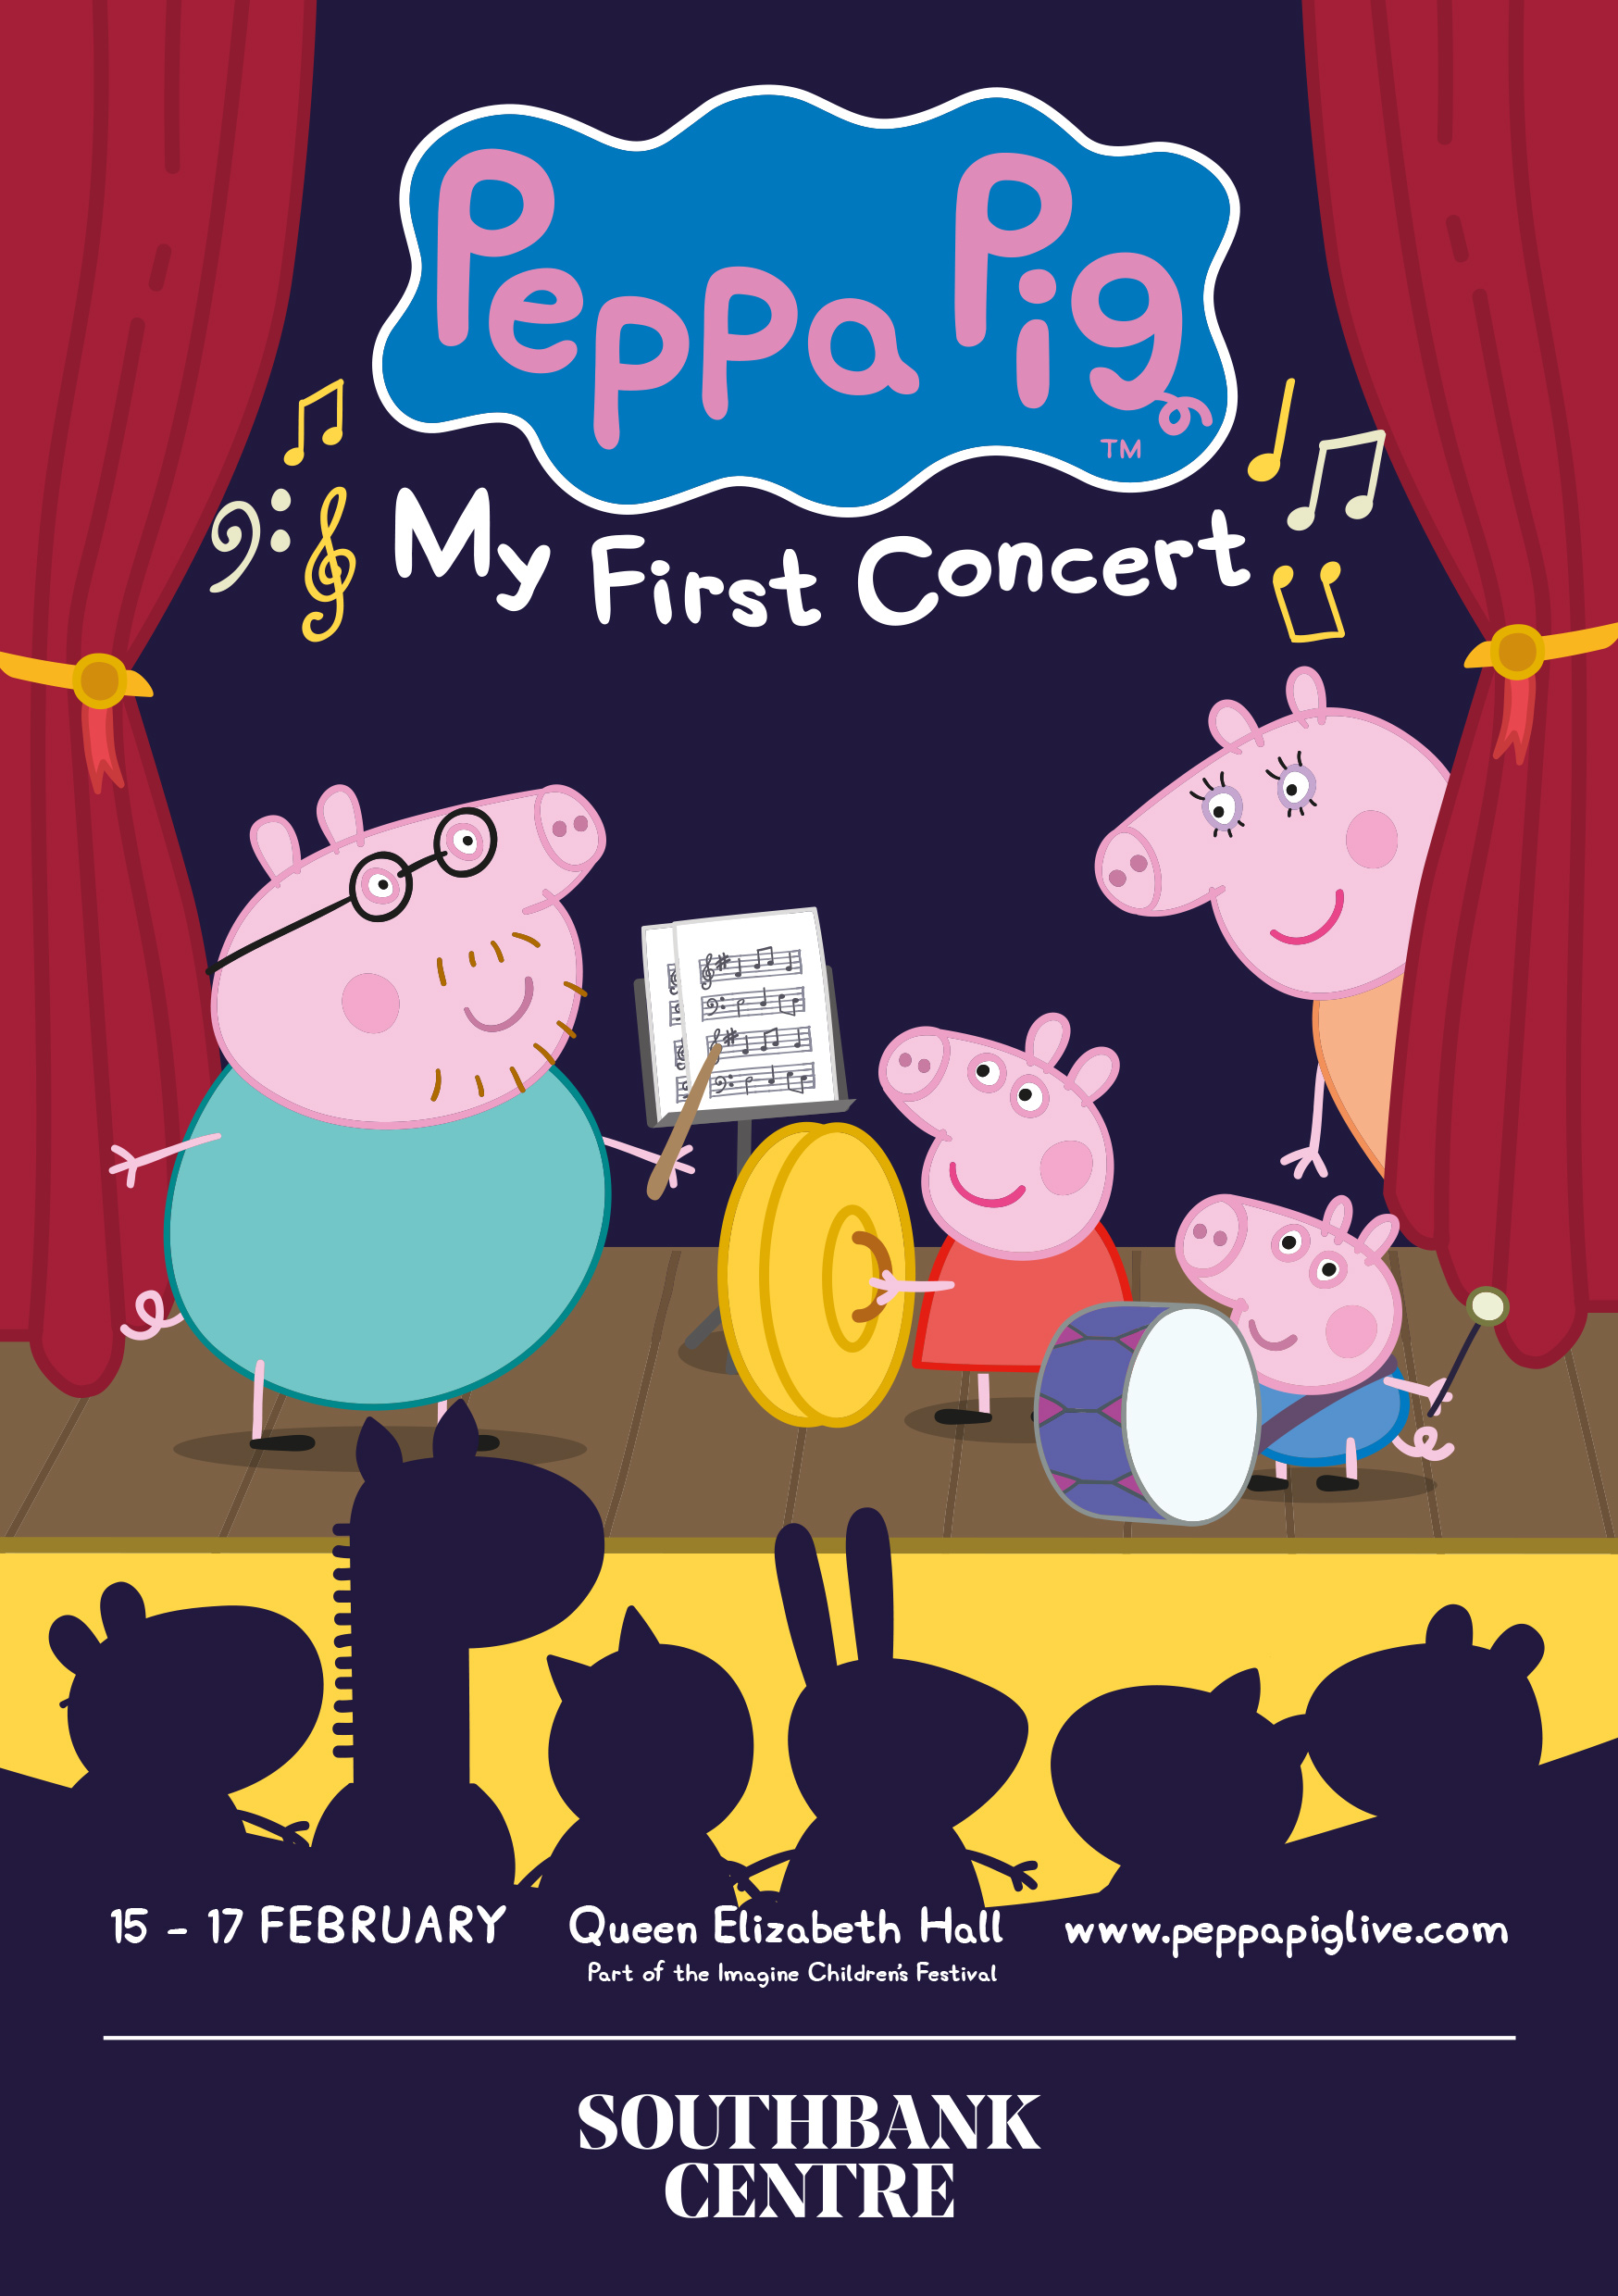 Peppa Pig - My First Concert Poster Show Image